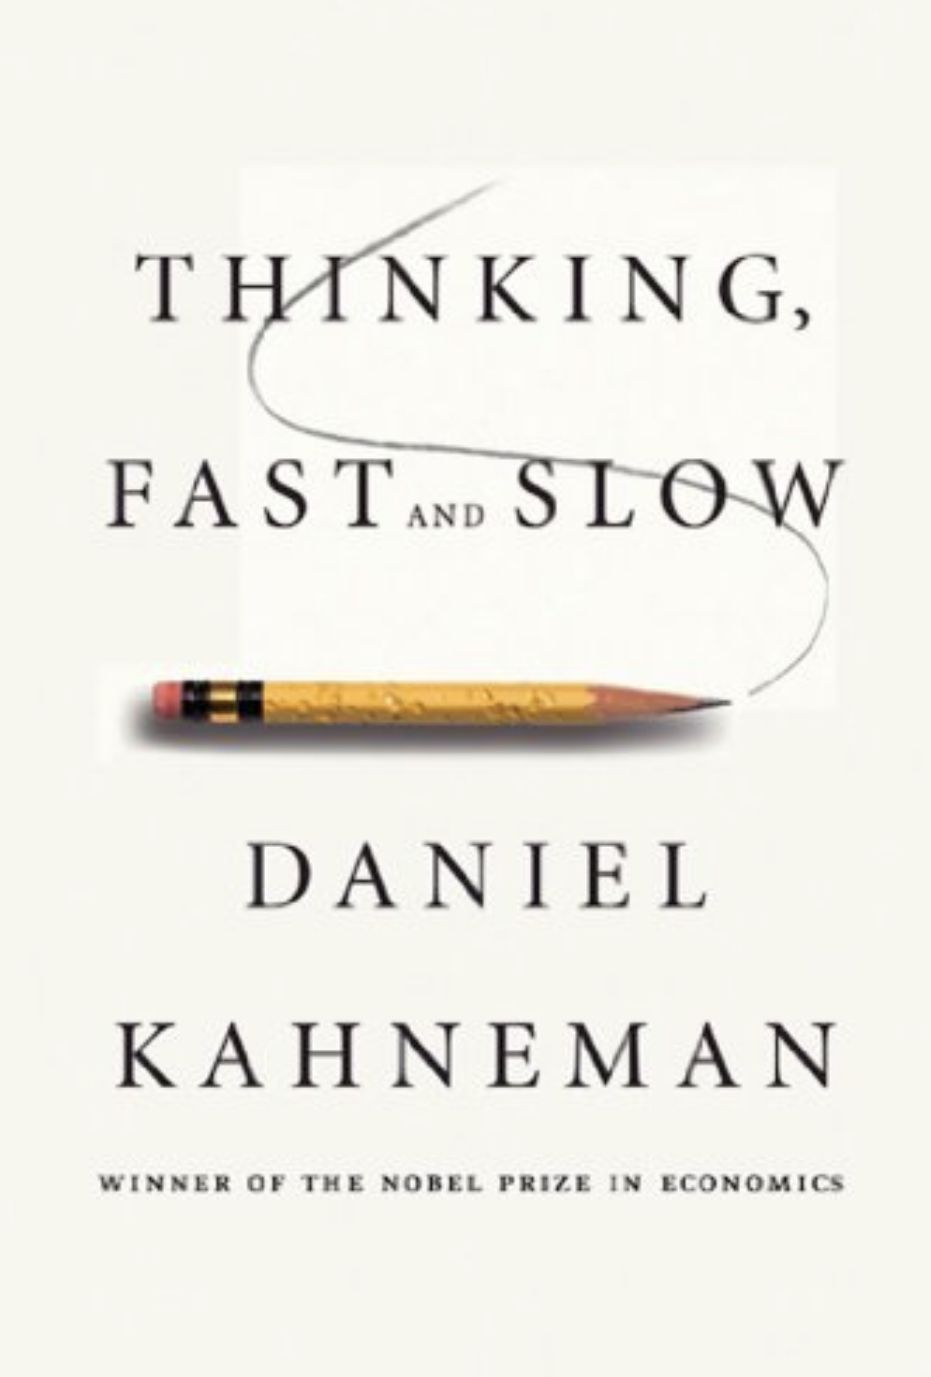 Here's the cover to Kahneman's book.